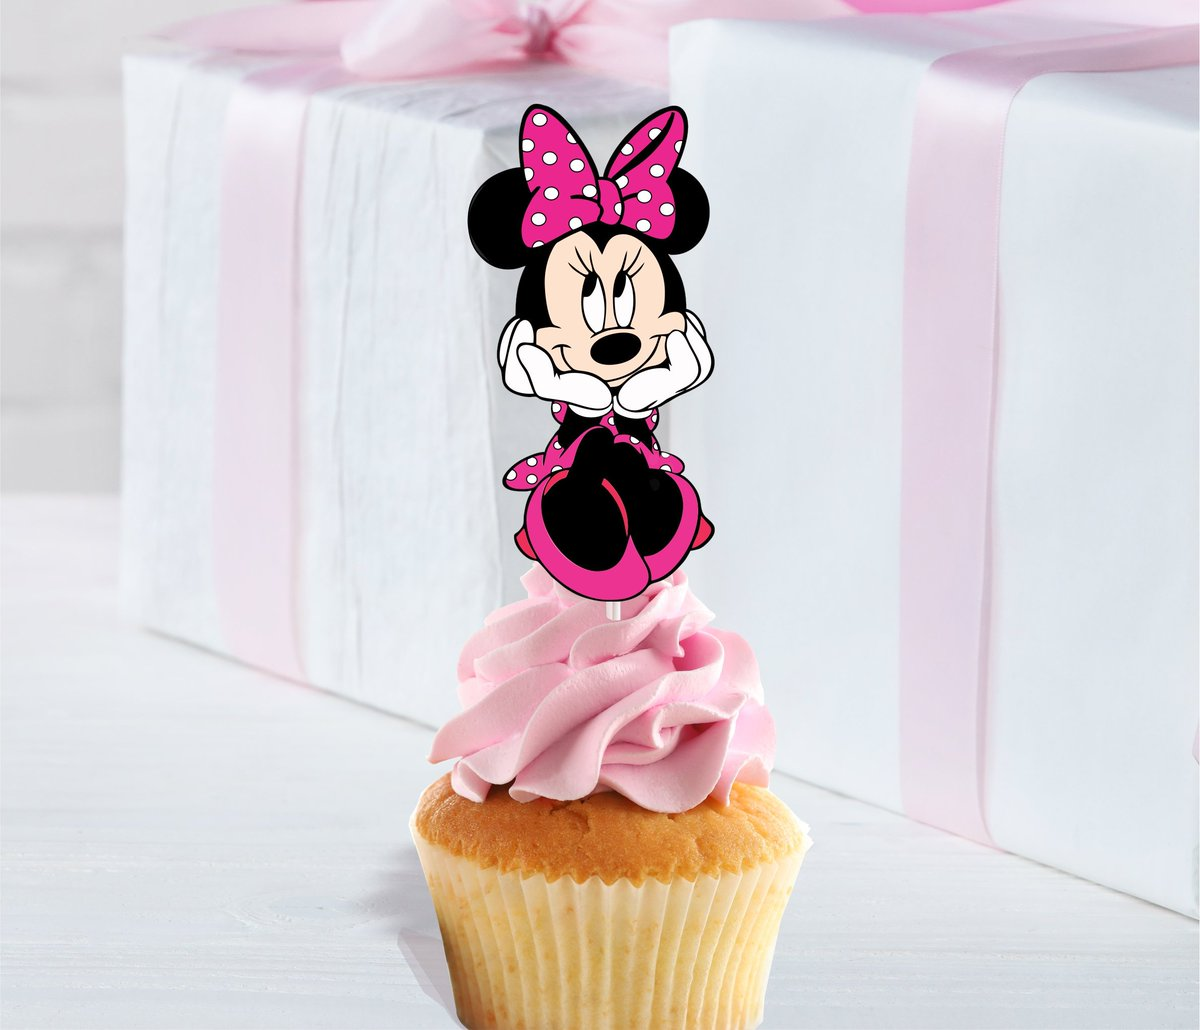 Set of 12 MINNIE MOUSE Cupcake Toppers Cupcake Picks Cupcake Decorations